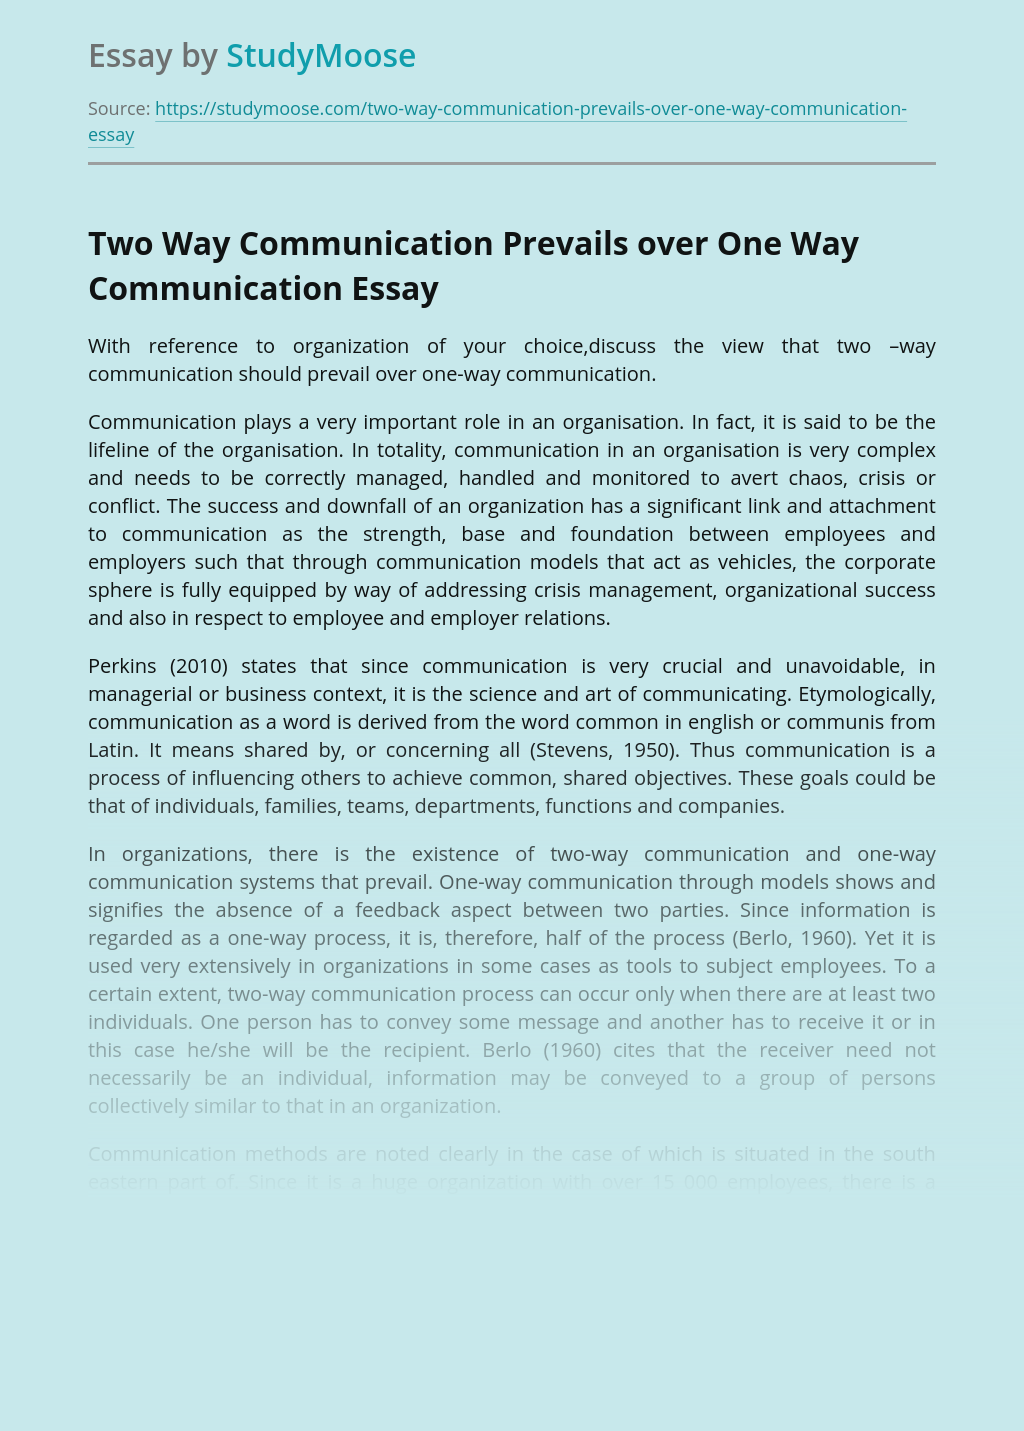 Two Way Communication Prevails over One Way Communication